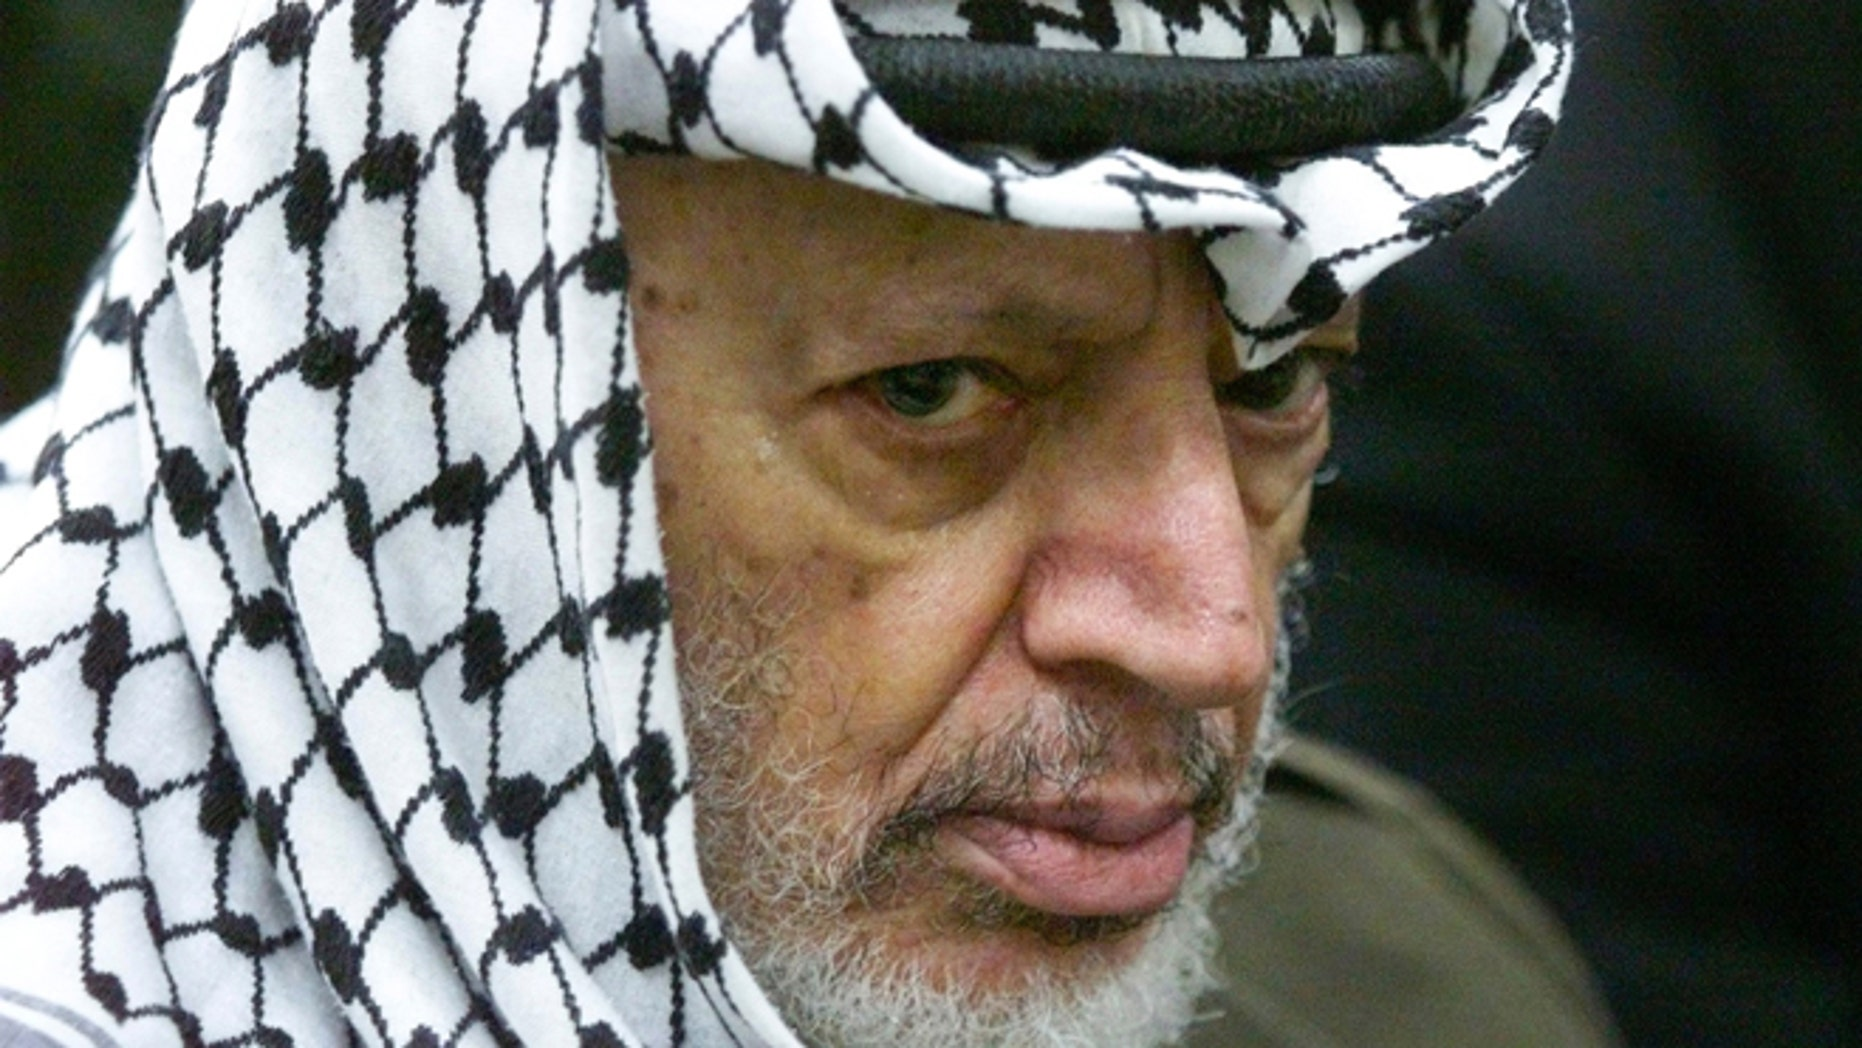 Al-Jazeera is reporting that a team of Swiss scientists has found moderate evidence that longtime Palestinian leader Arafat died of poisoning.